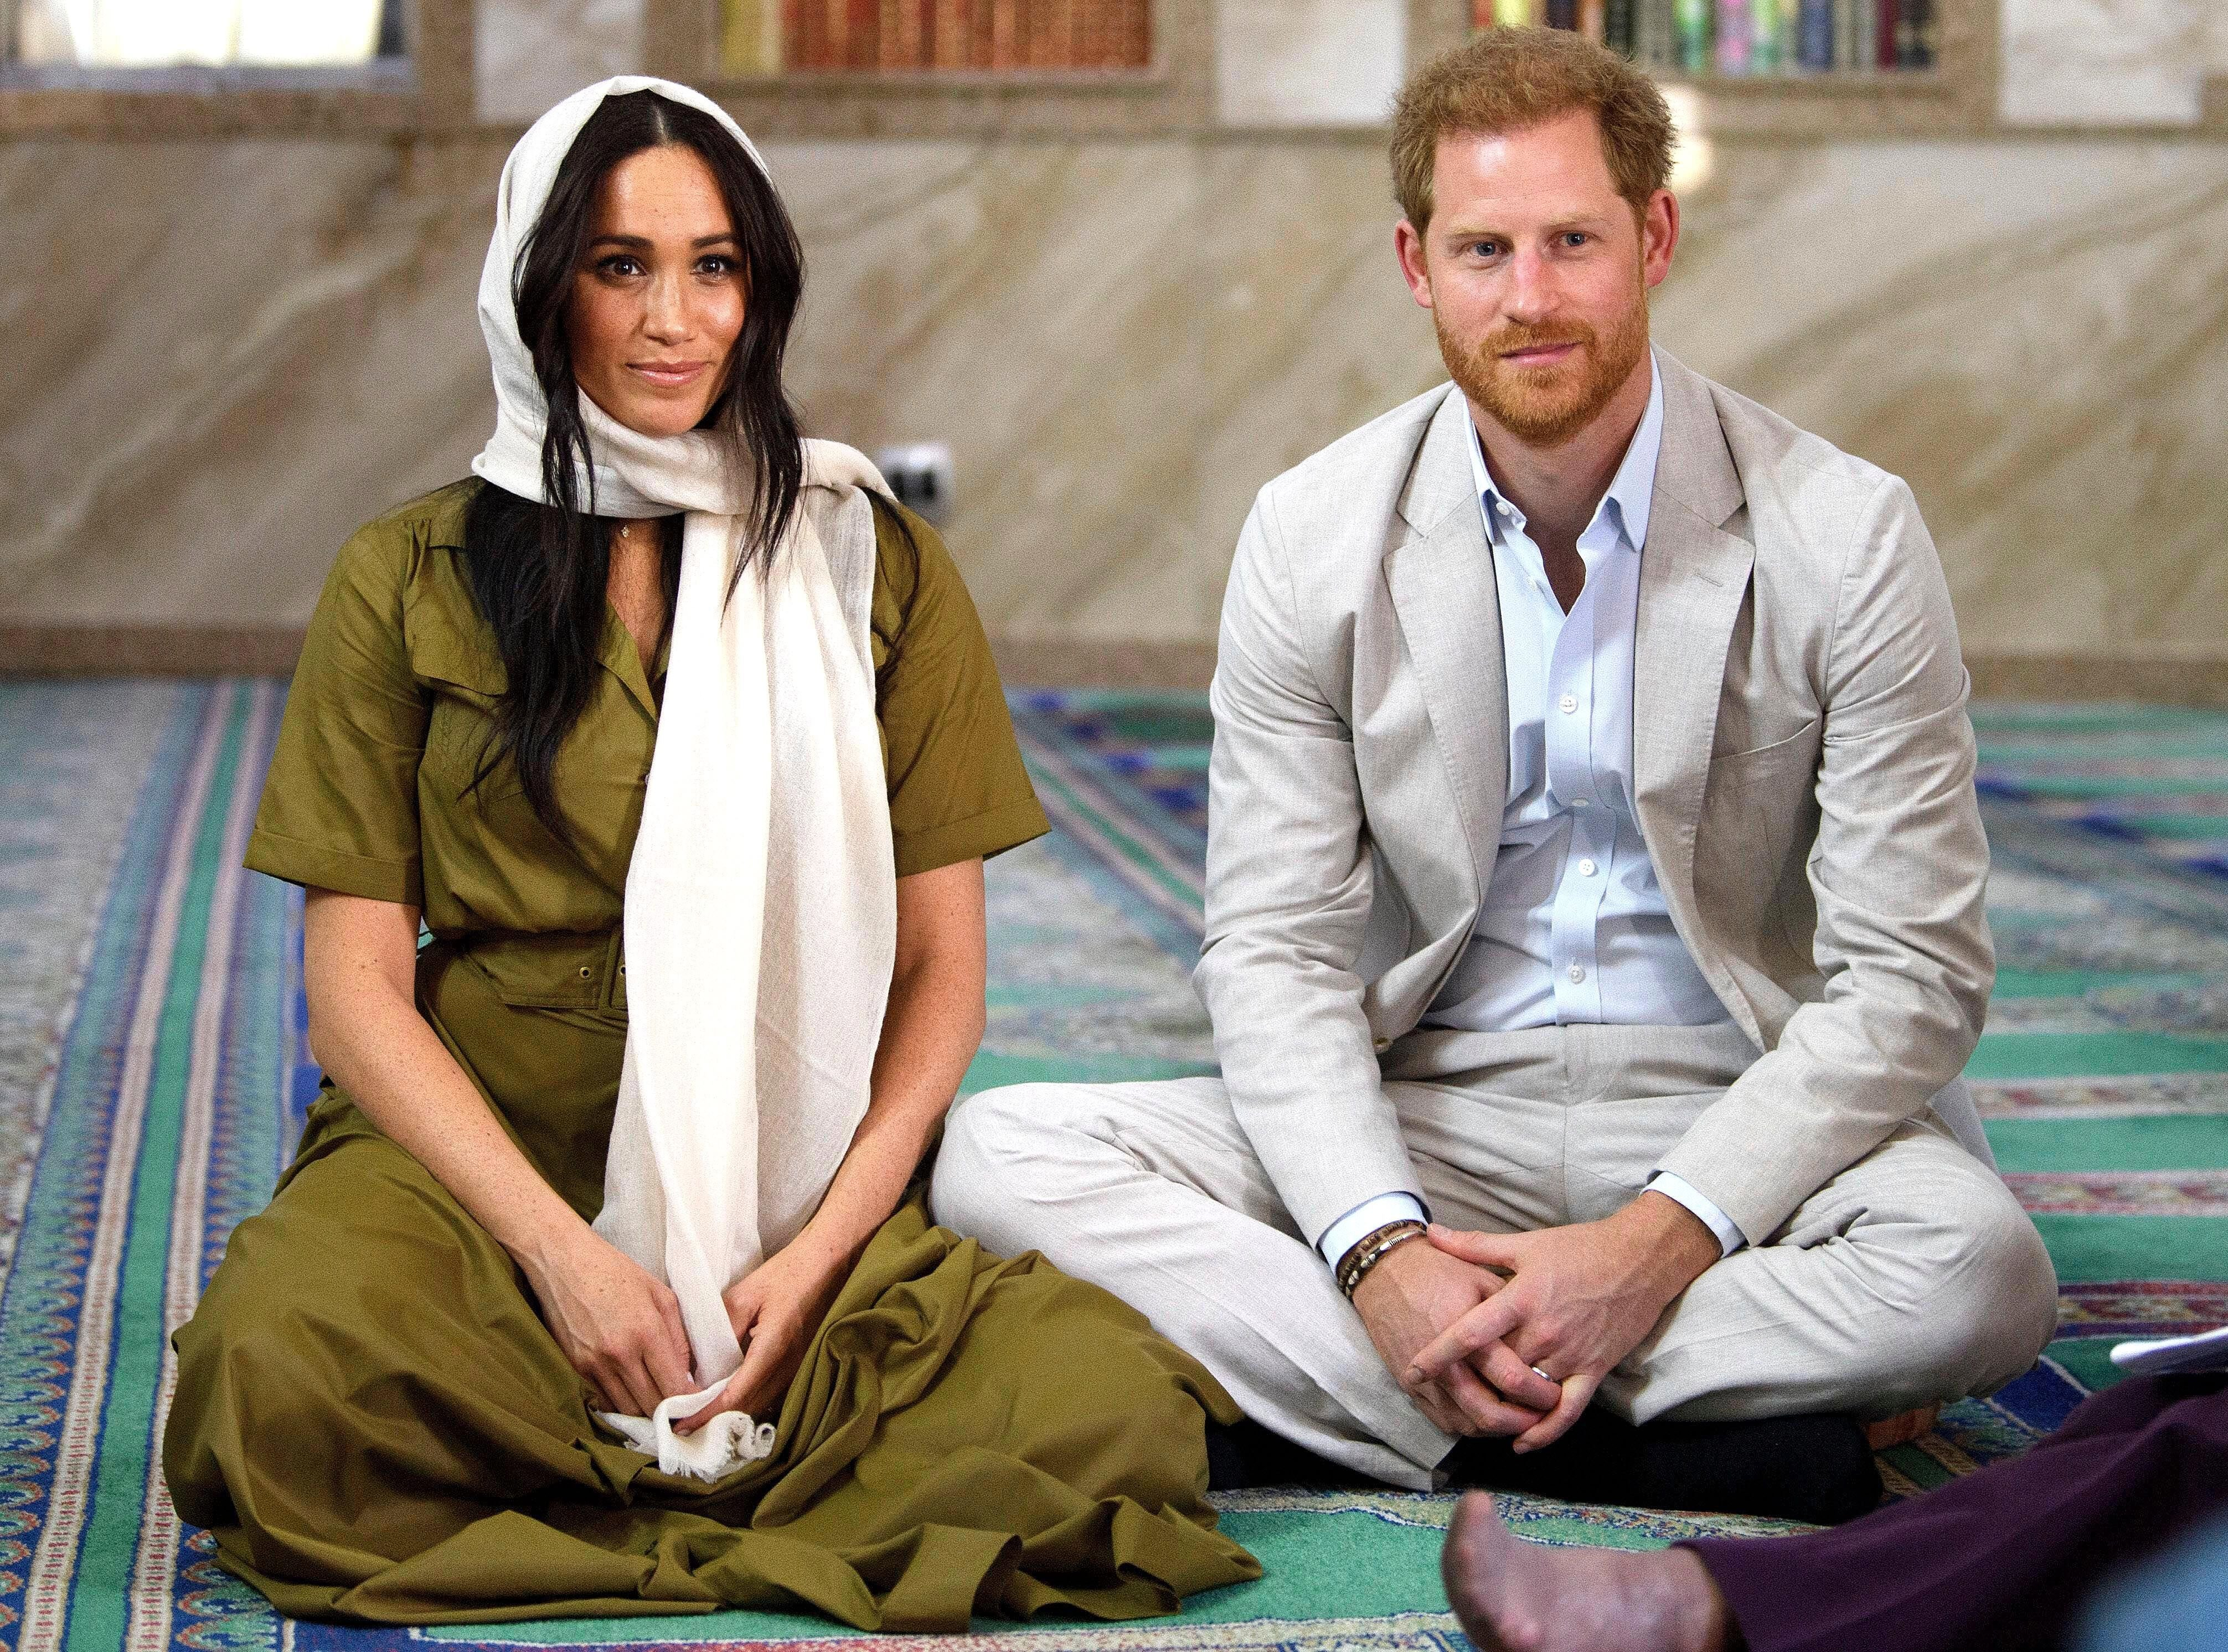 Meghan Markle and Prince Harry visit the Auwal Mosque. Source: Getty Images